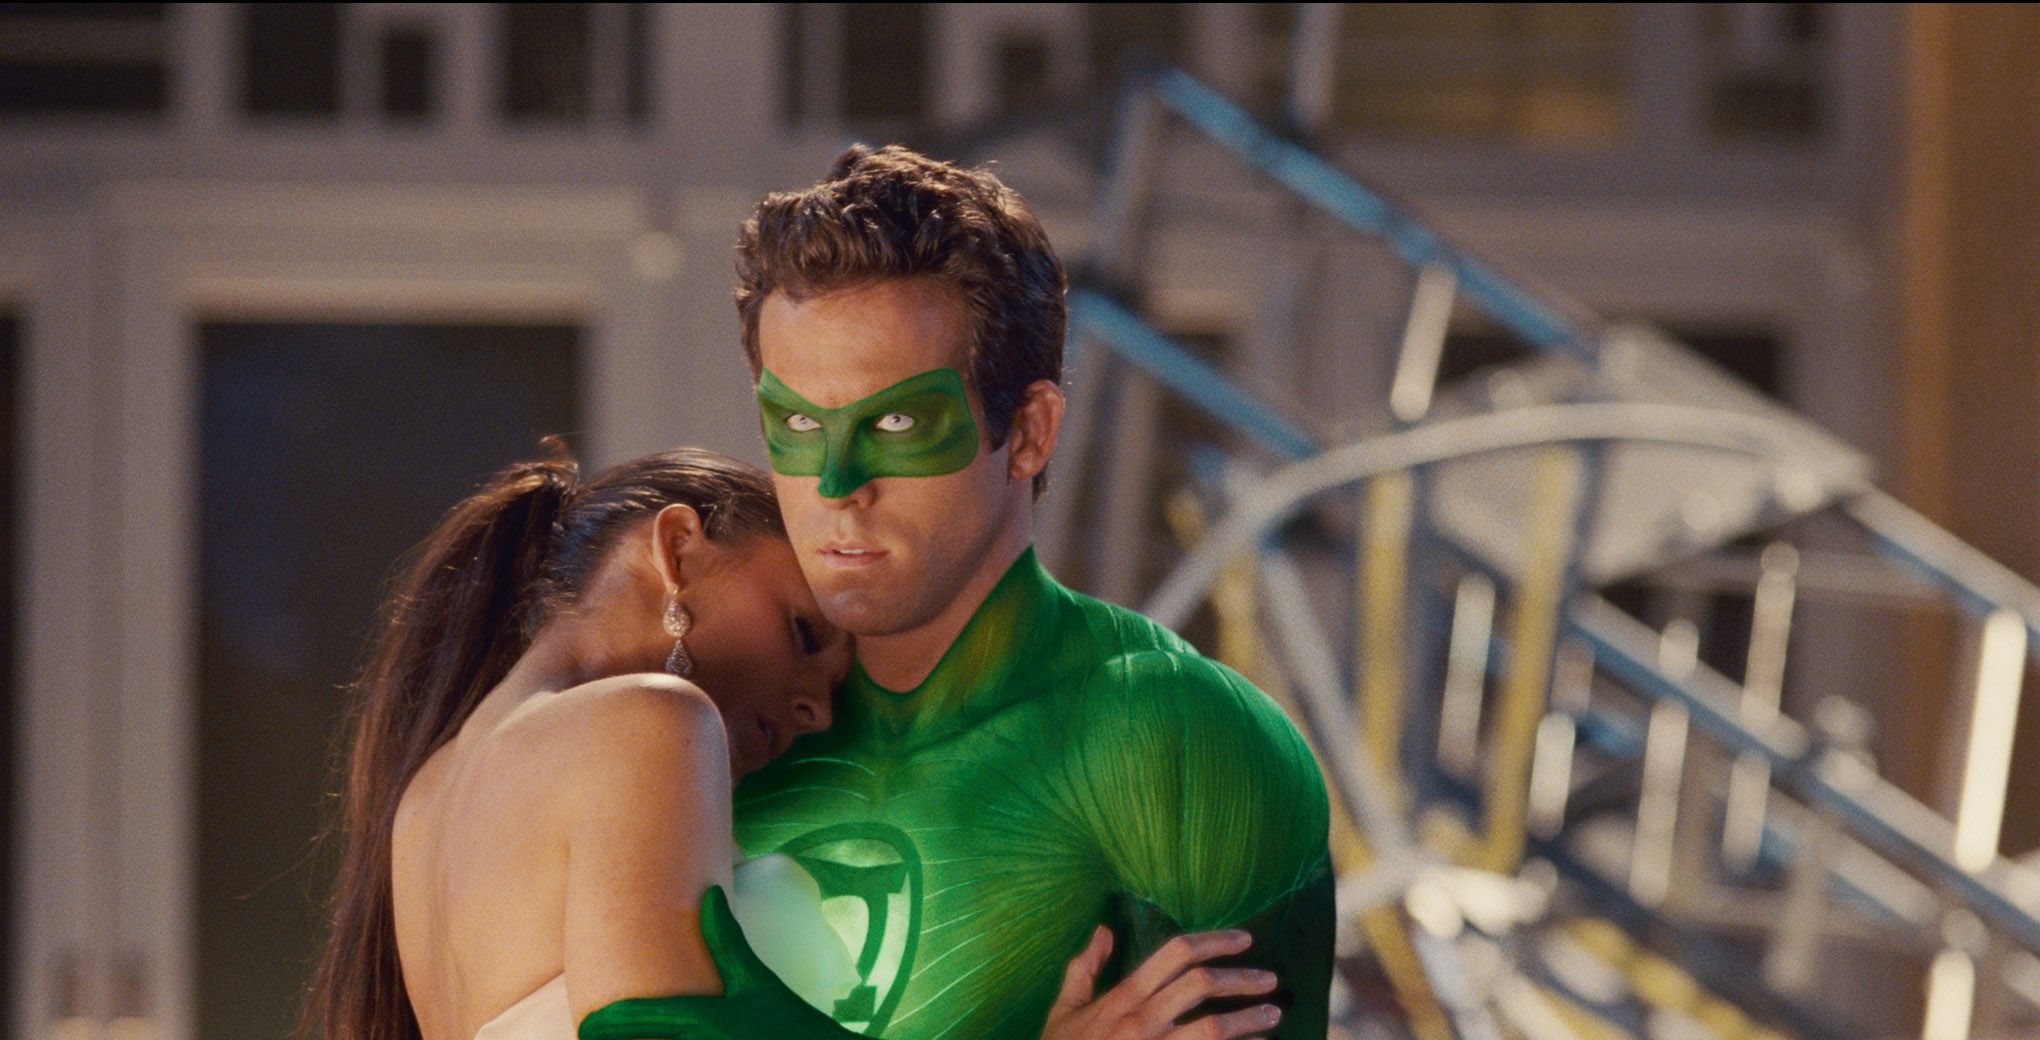 GREEN LANTERN High Resolution Movie Images | Collider